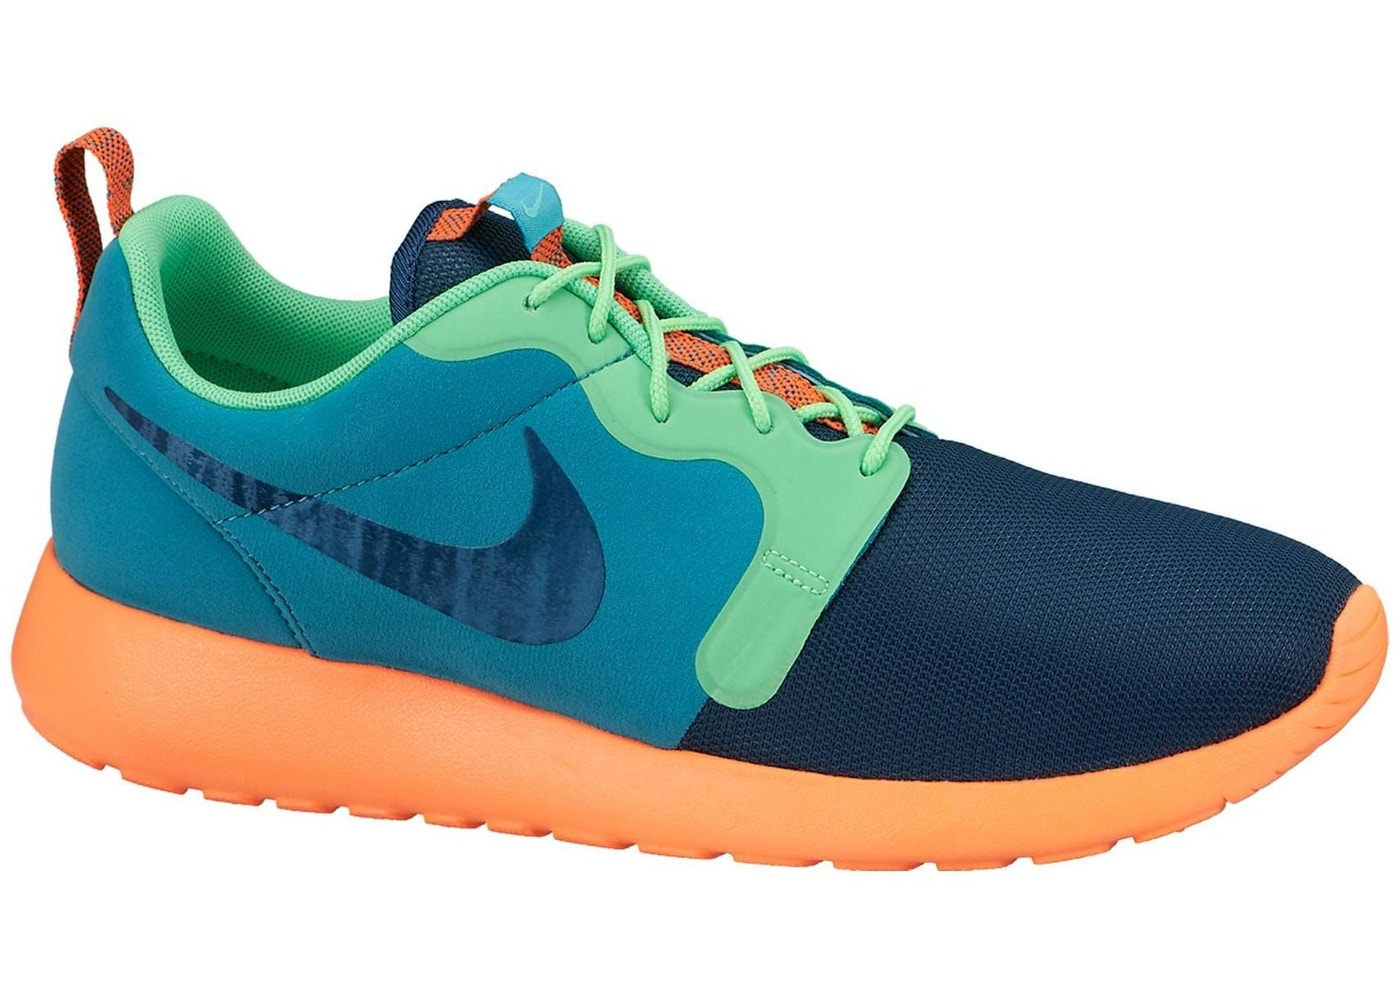 4e76a1ffb8b0 Nike Roshe Run Hyperfuse Poison Green - 636220-300